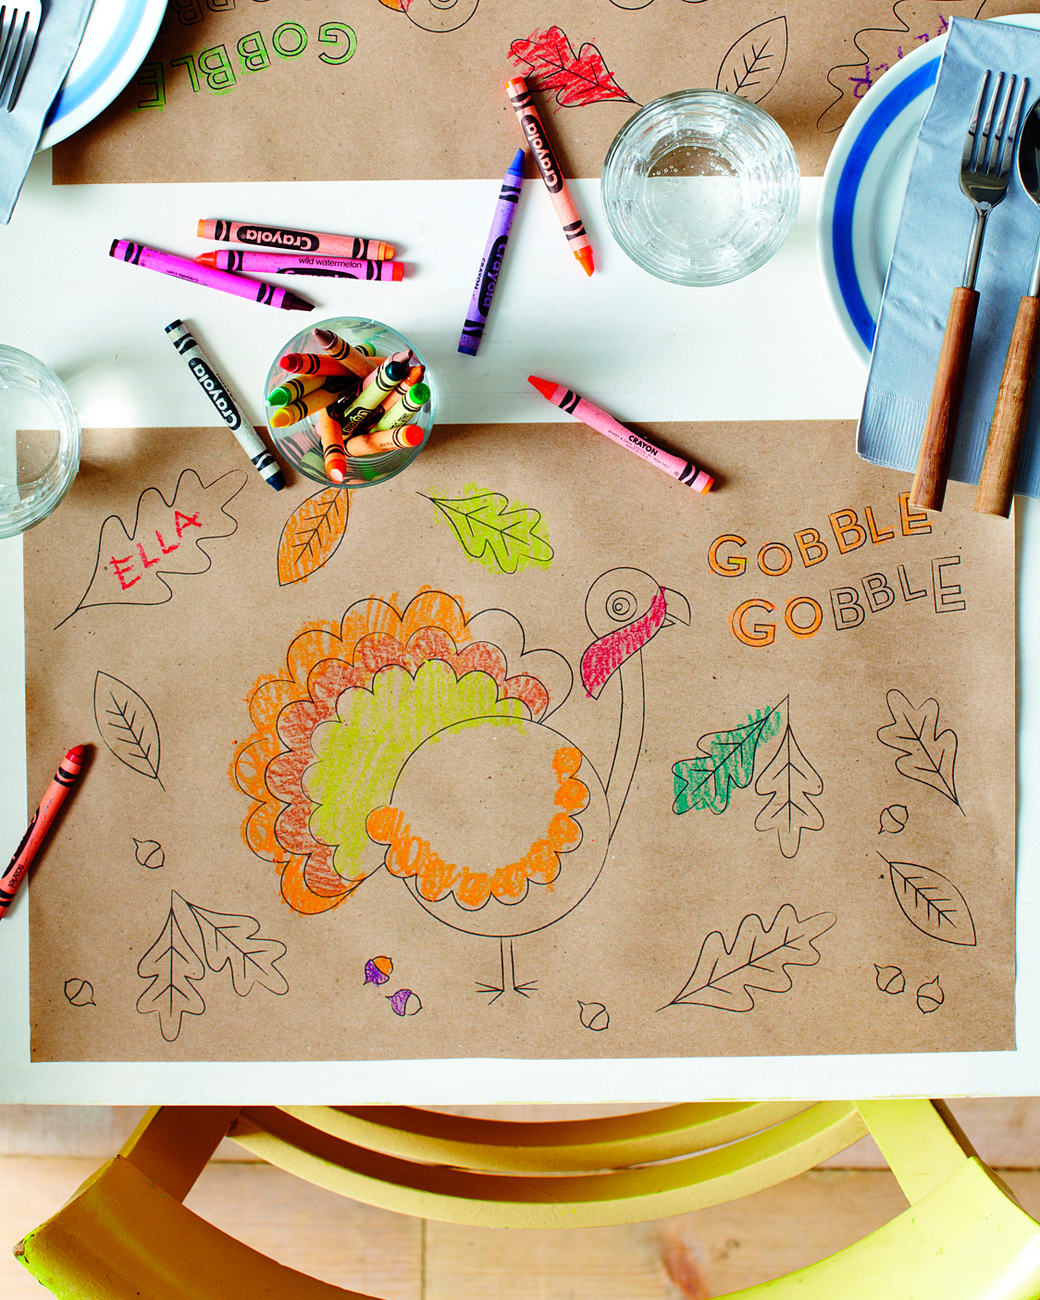 Good-things-placemat-mld107720_vert